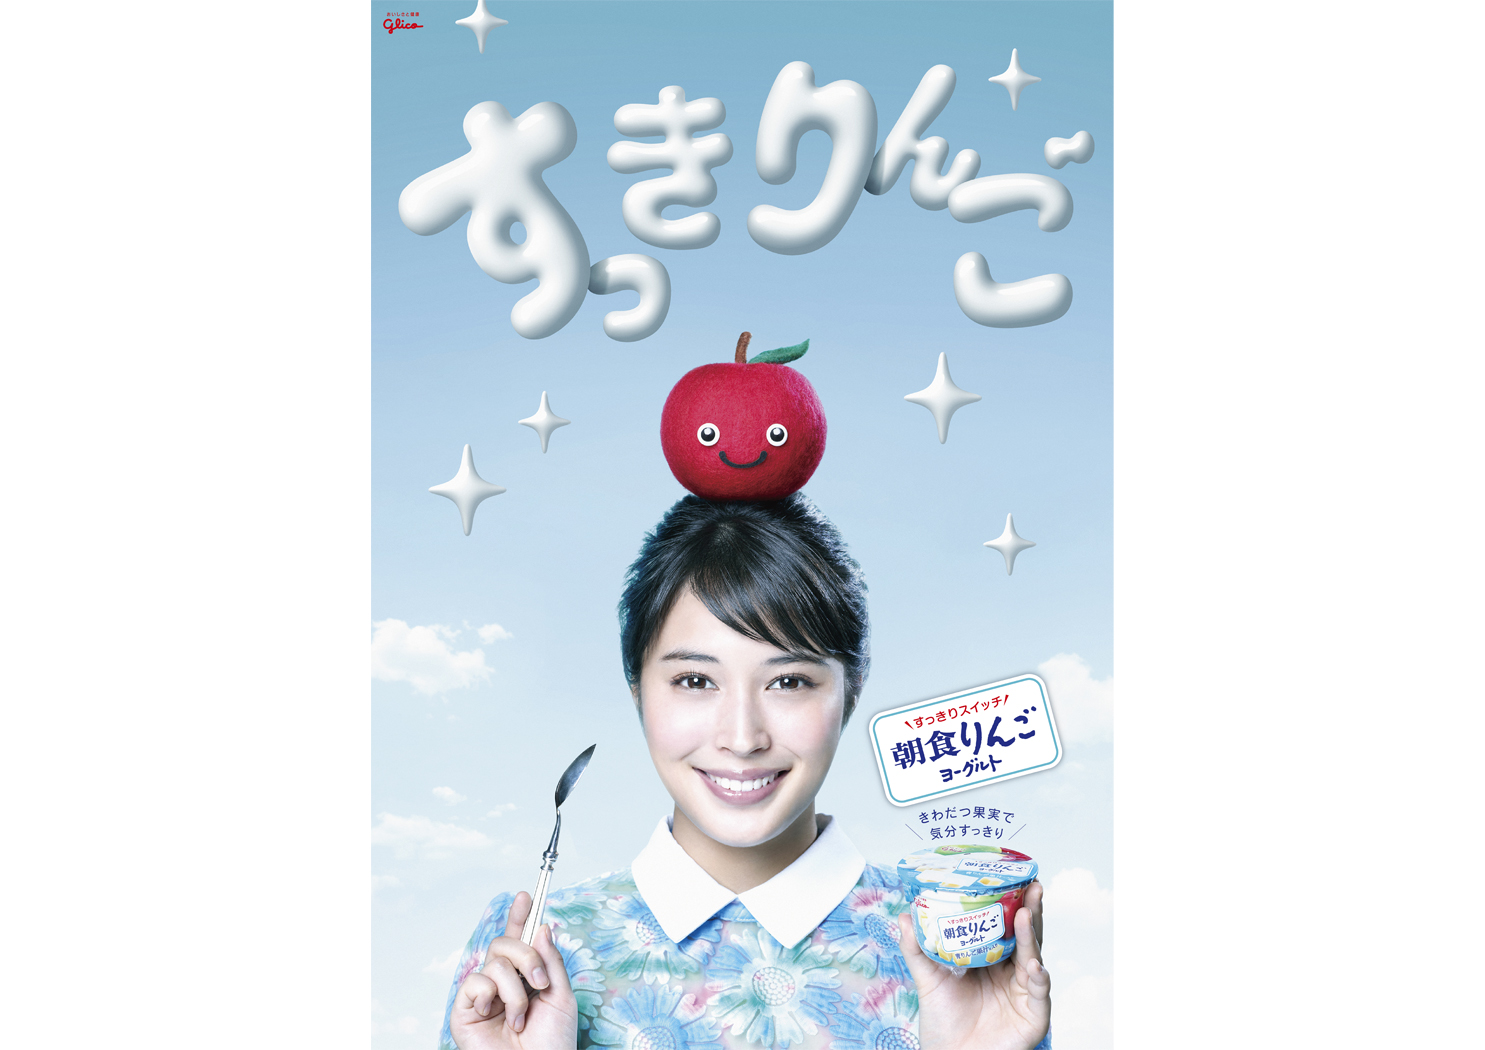 choshokuringo yogurt poster